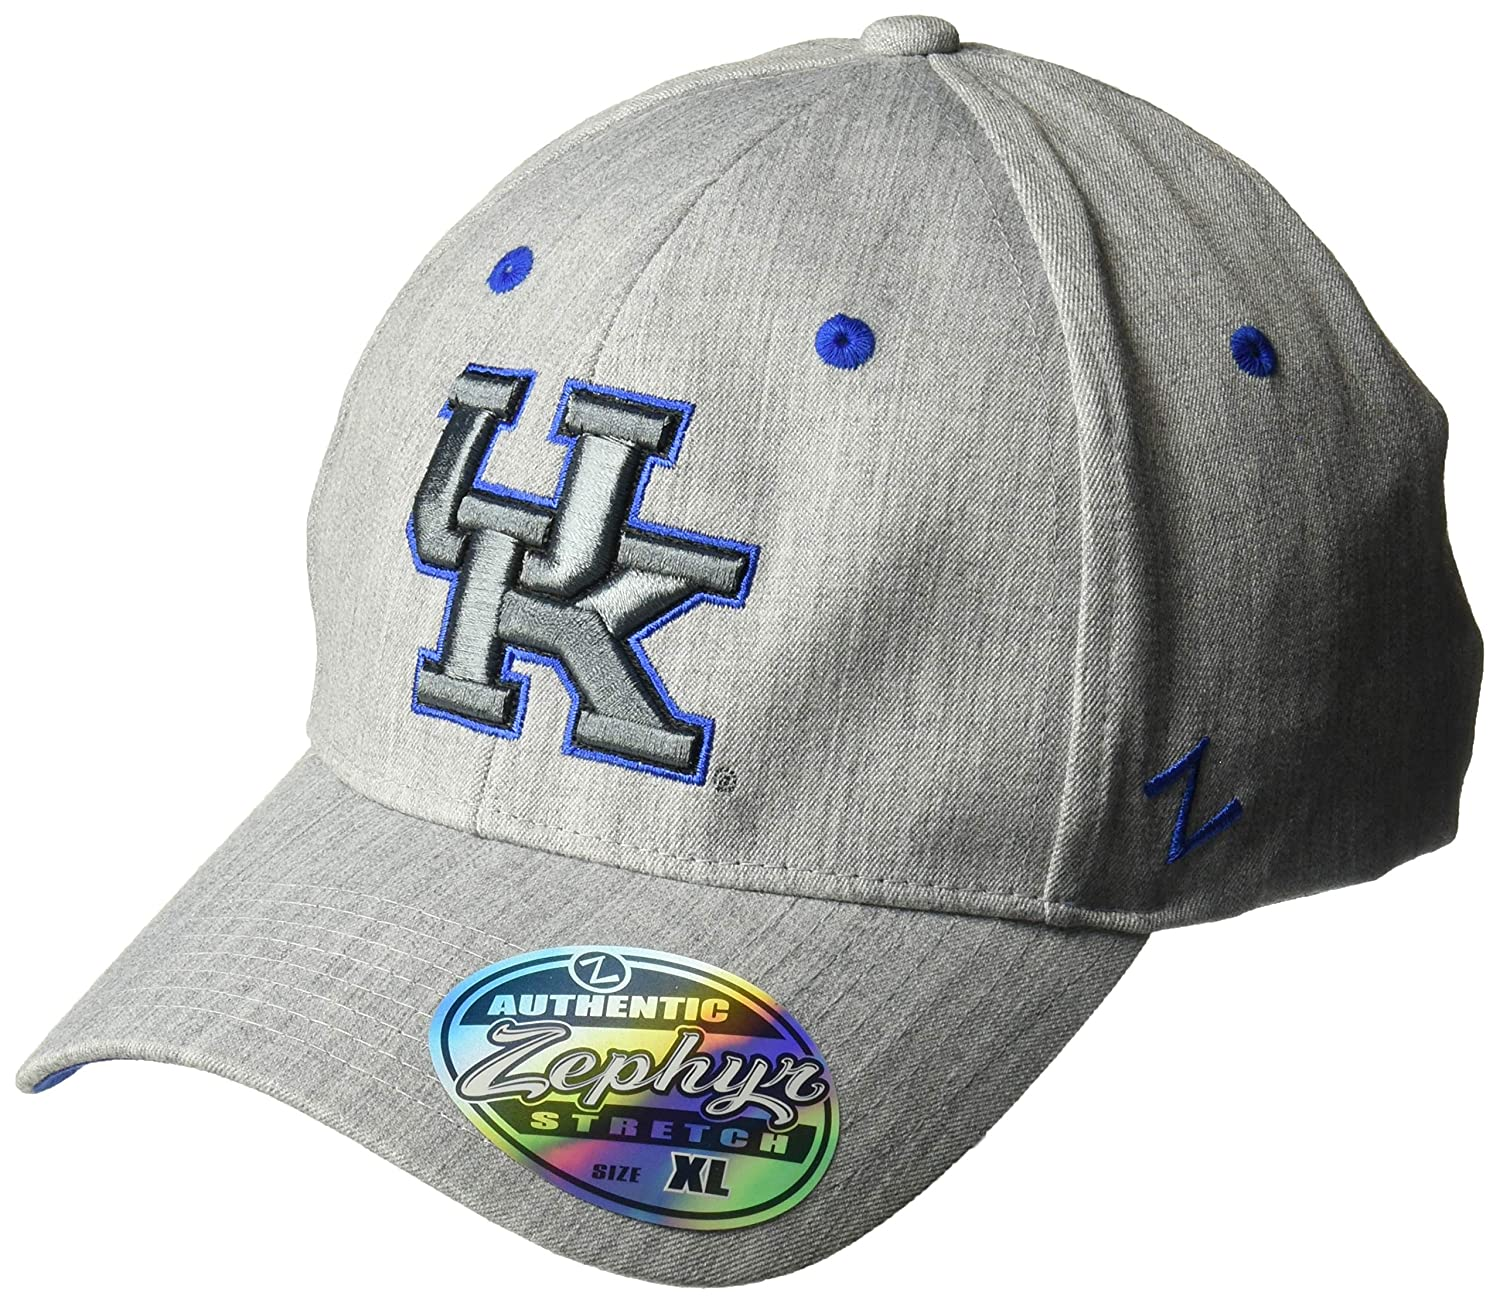 6a93648f72d9c2 Amazon.com : Zephyr NCAA Mens Tailored Stretch Cap : Sports & Outdoors